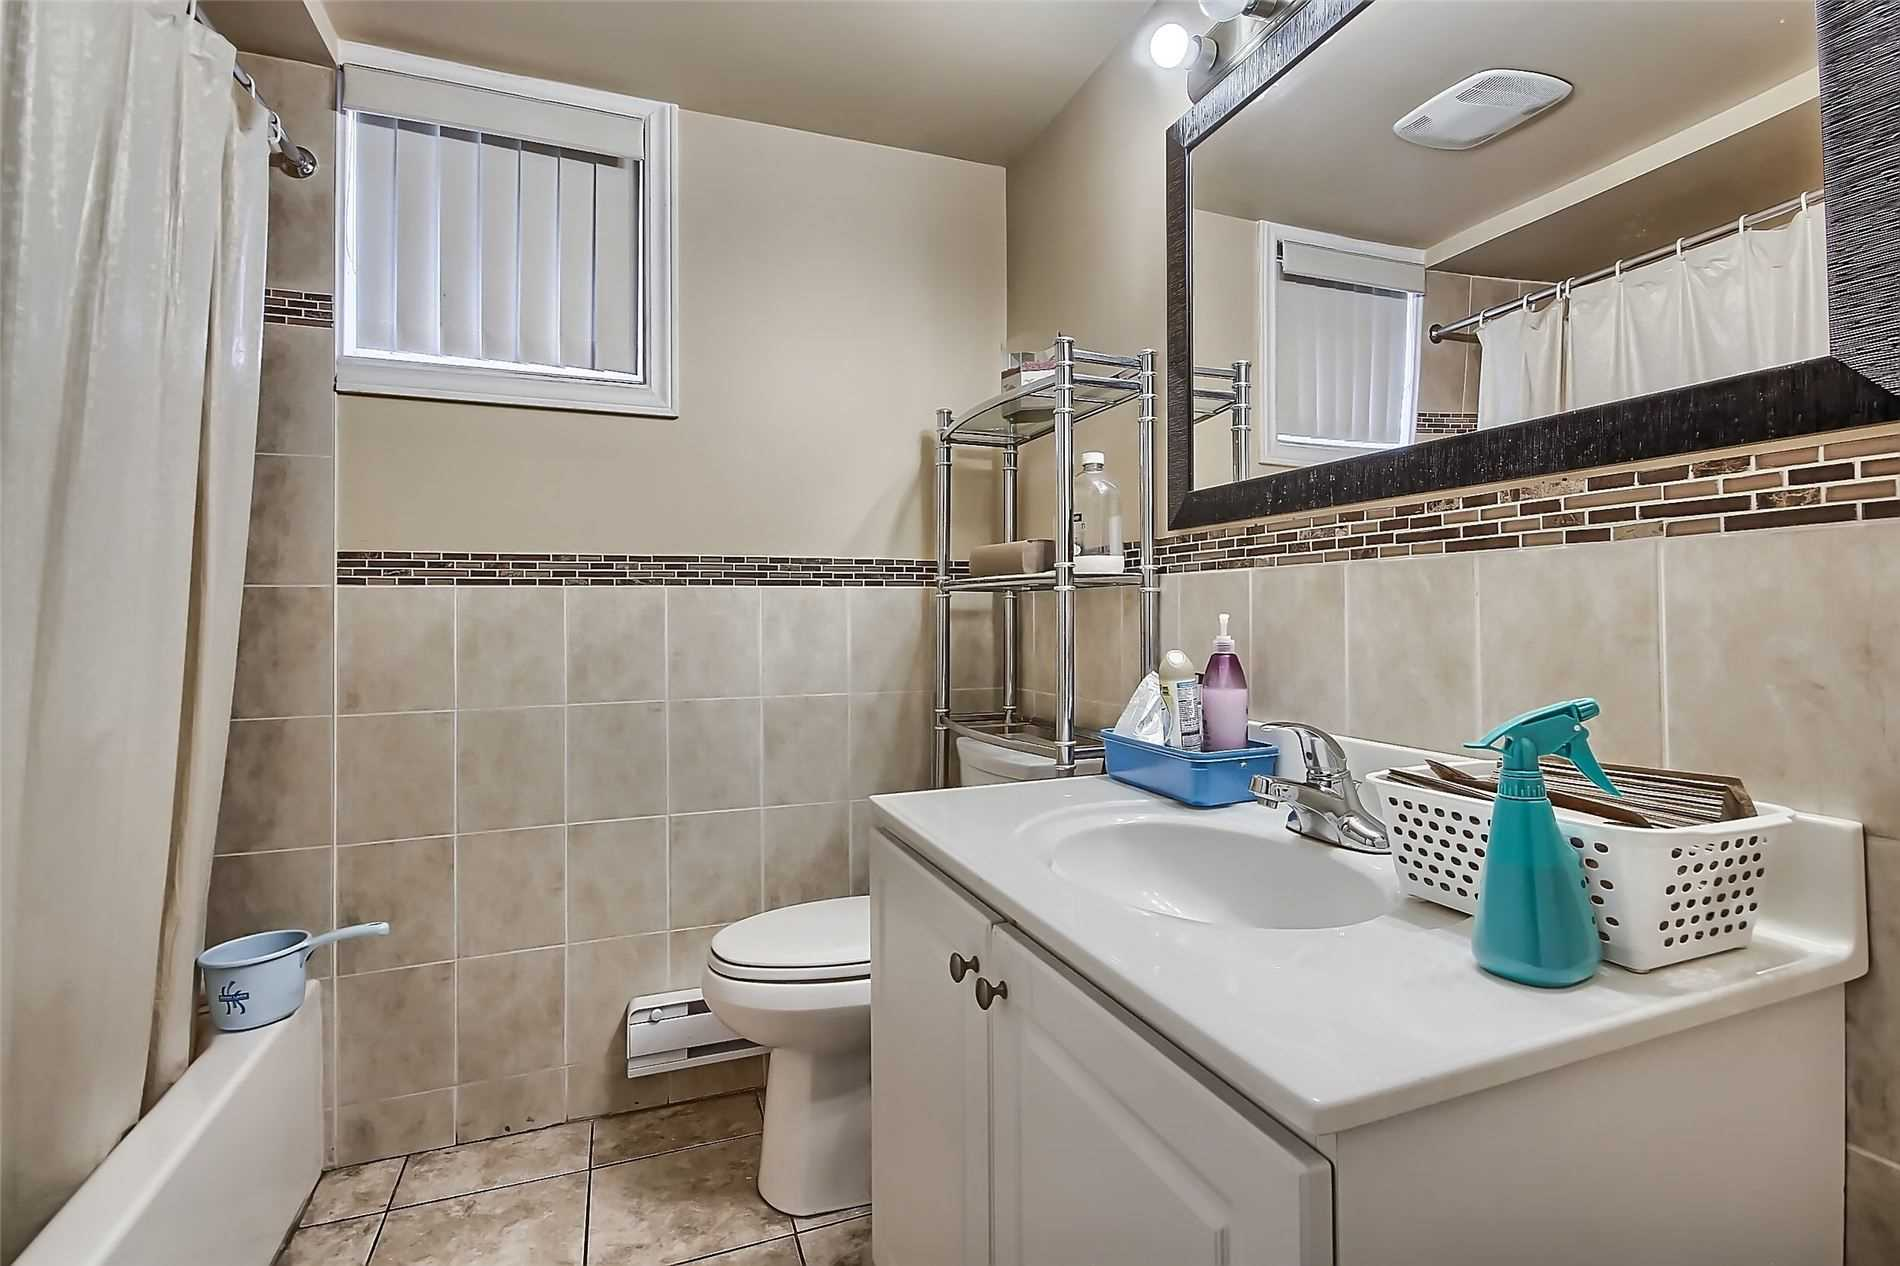 273 Finch Ave, Toronto, Ontario M2R1M8, ,2 BathroomsBathrooms,Office,For Sale,Finch,C4803356